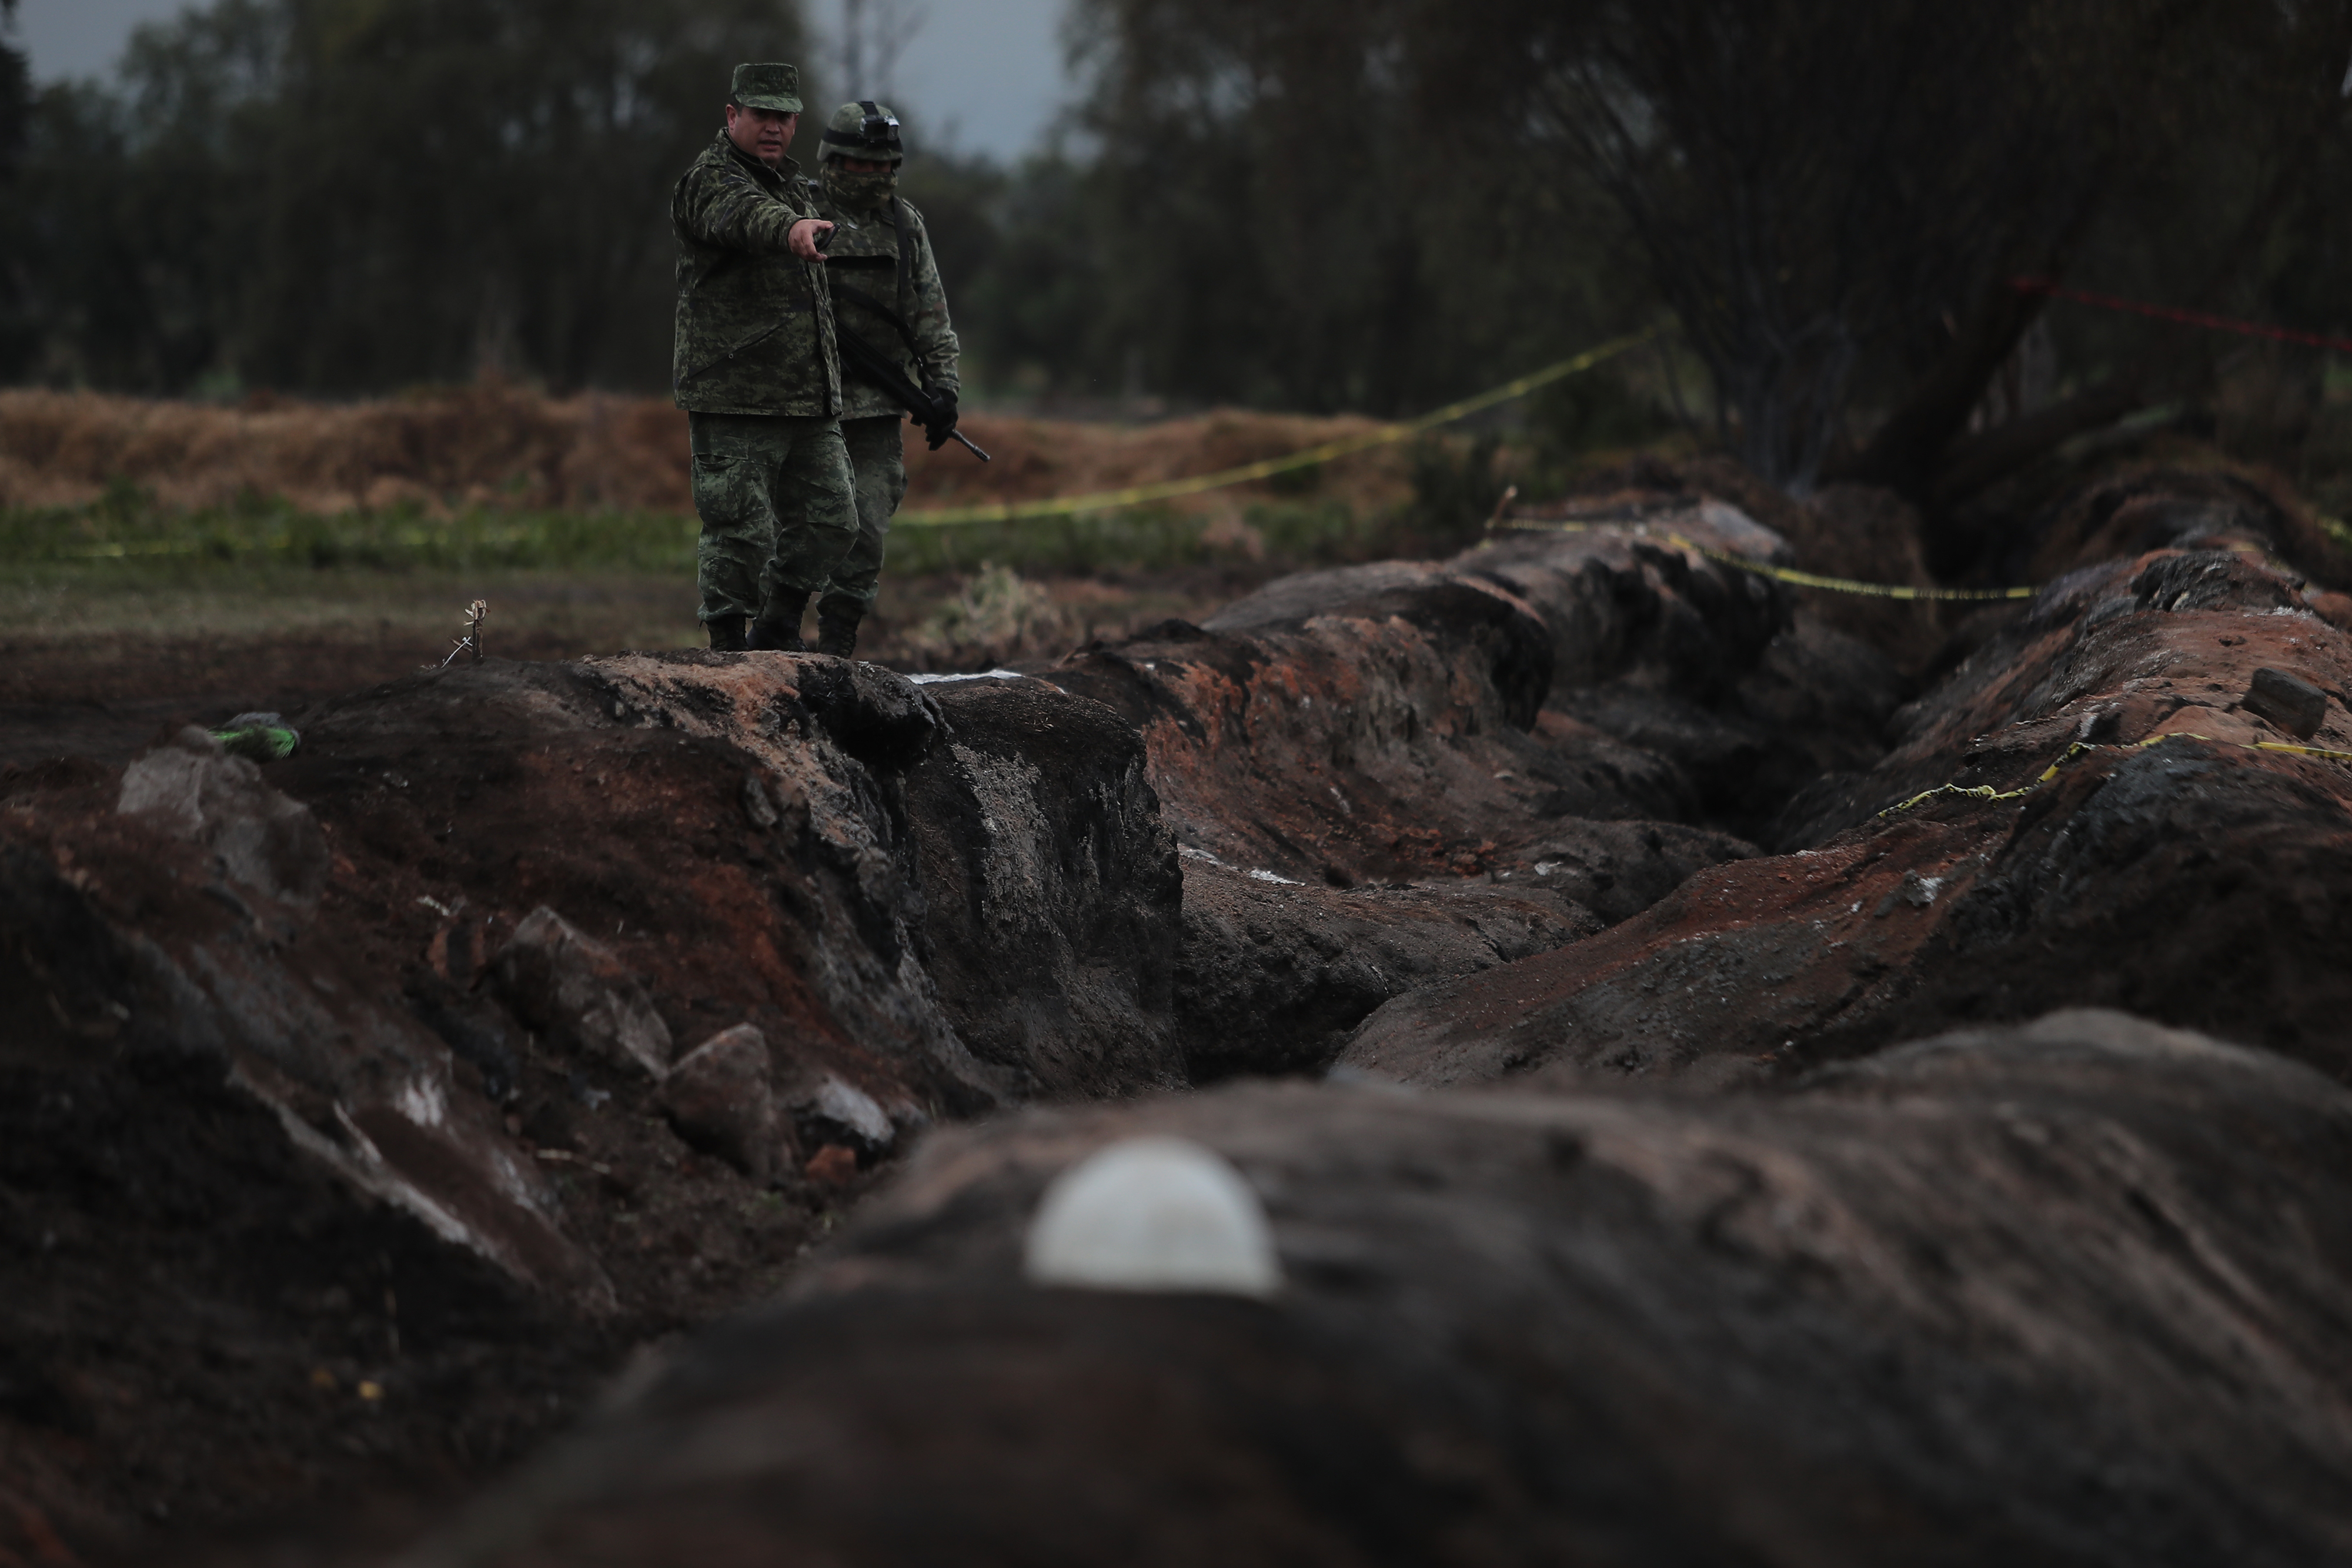 TLAHUELILPAN, MEXICO - JANUARY 20: Members of the Military watch over the explosion area of the pipeline on January 20, 2019 in Tlahuelilpan, Mexico. In a statement, PEMEX announced that the explosion was caused by the illegal manipulation of the pipeline, as minutes before the accident videos were shot where people could be seen filling drums and car fuel tanks. (Photo by Hector Vivas/Getty Images)